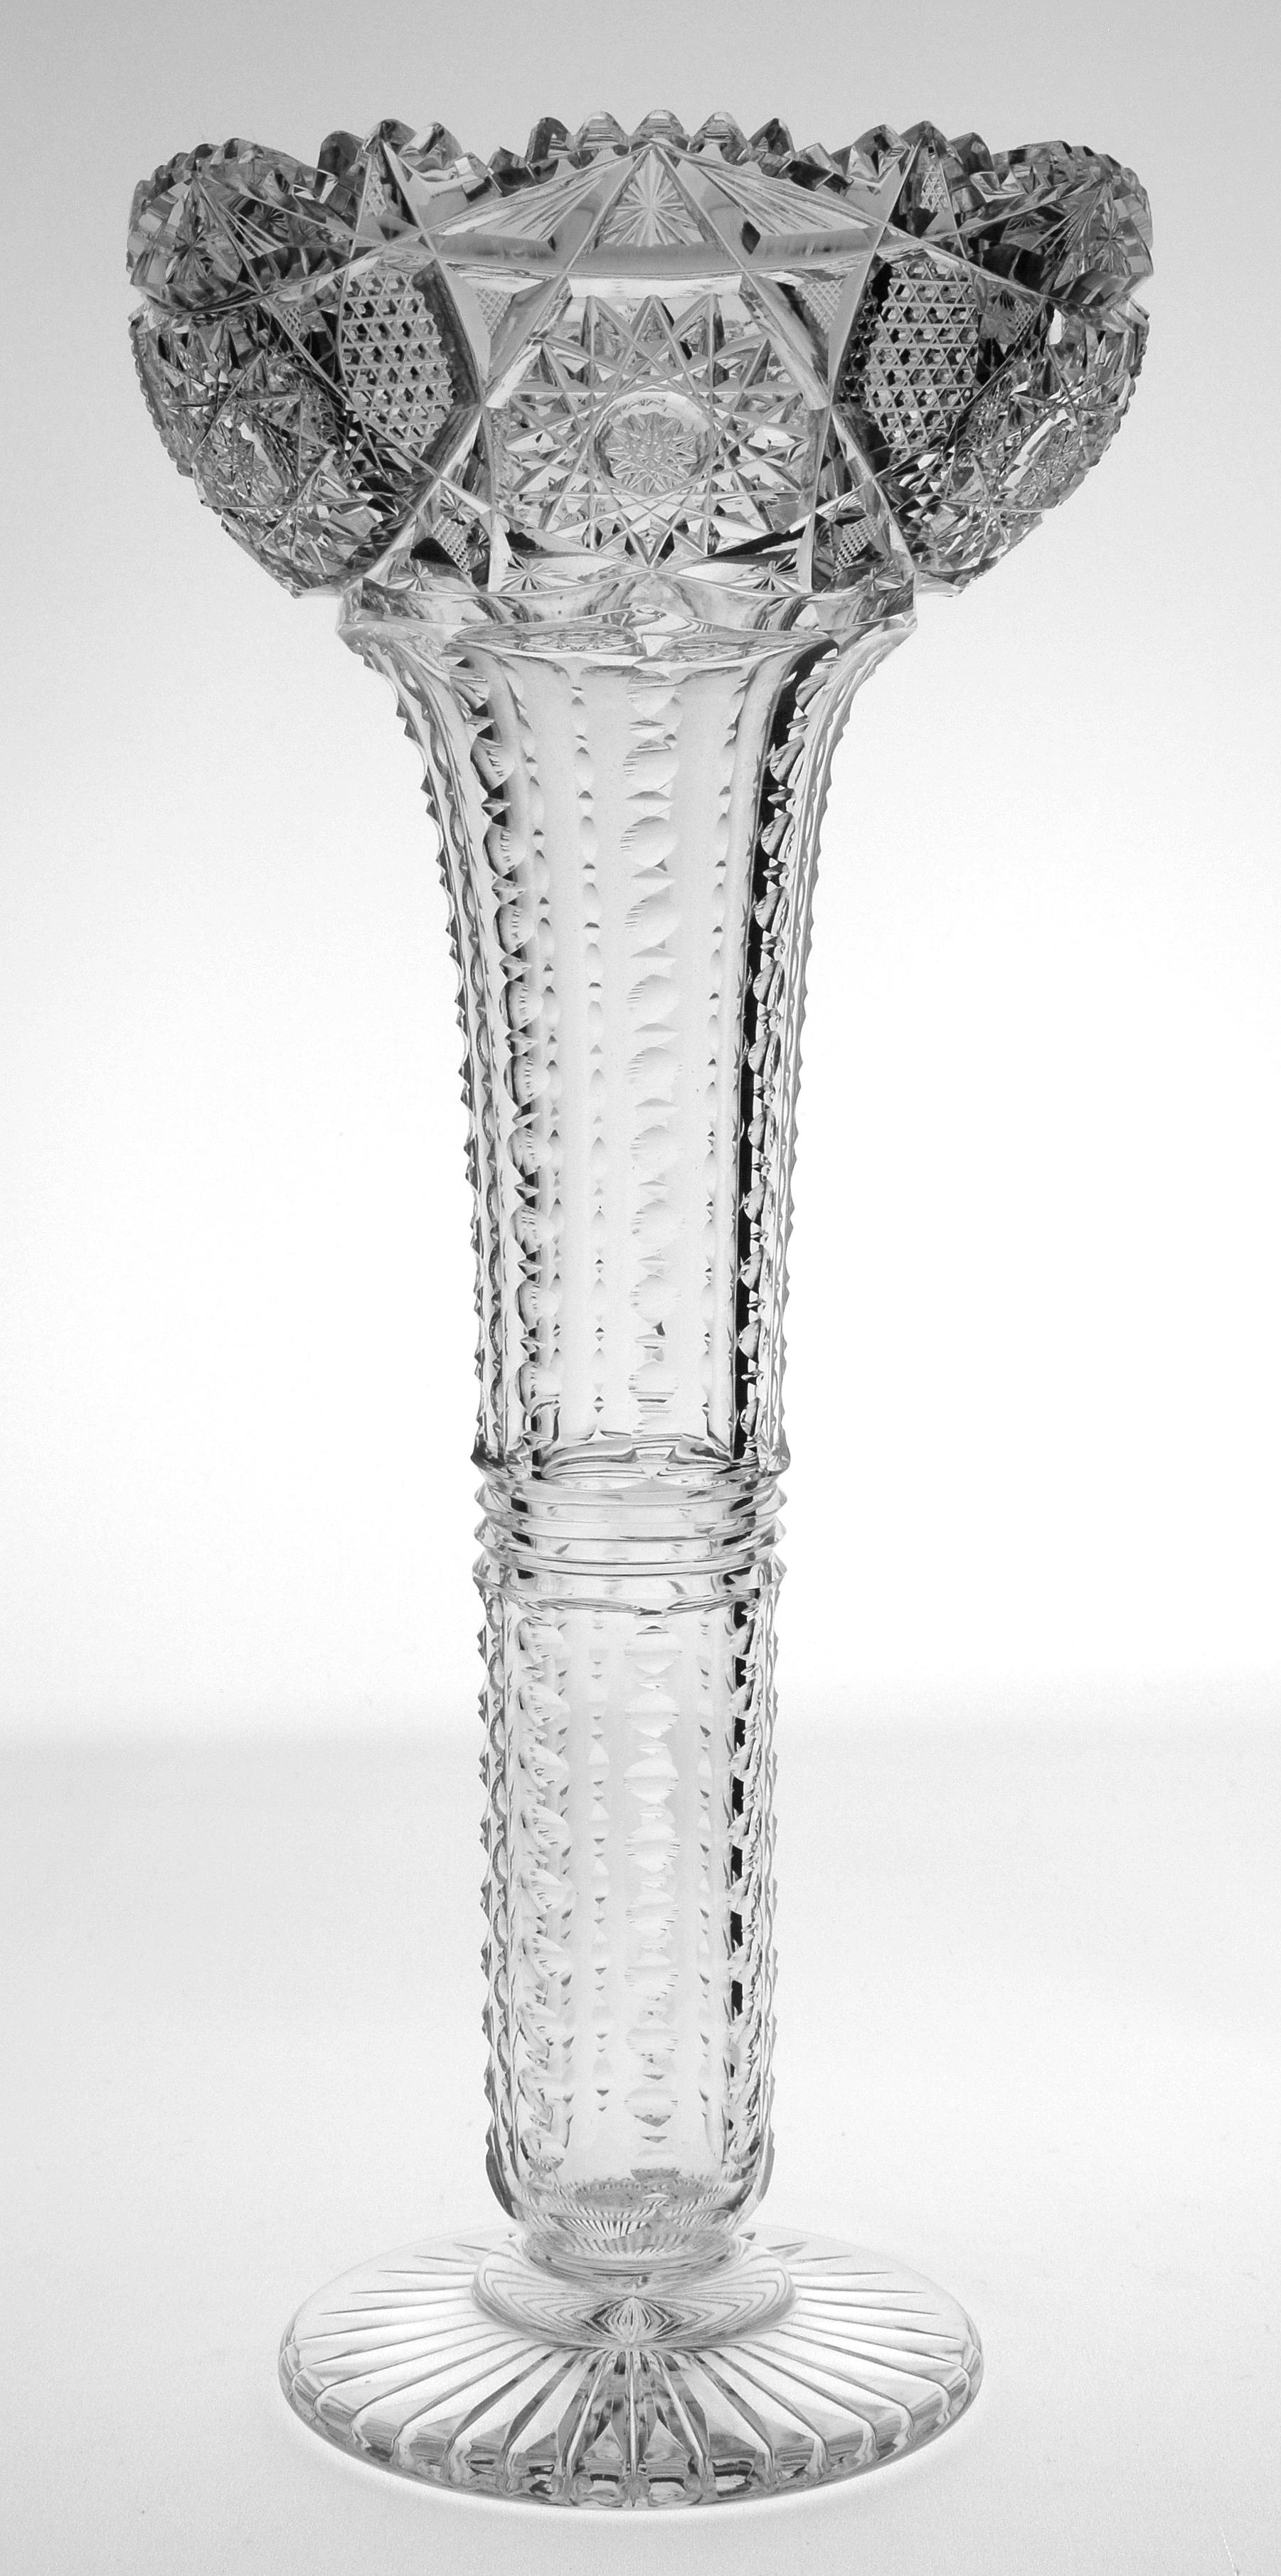 15-Inch Hollow-Stem Vase - FSG1774 Image